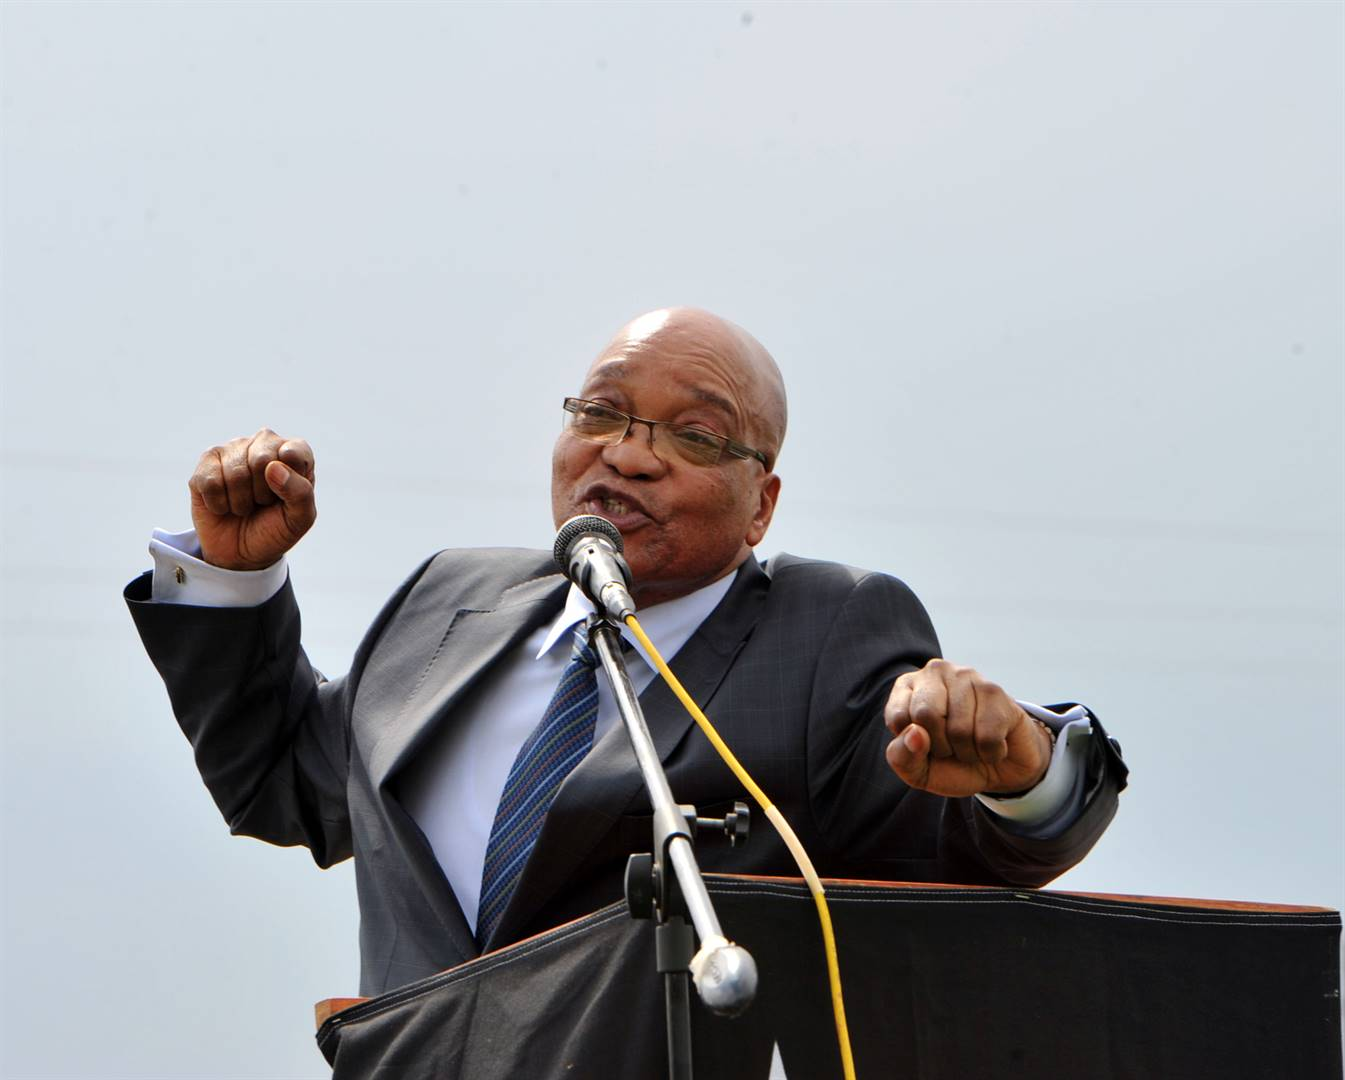 Carl Niehaus: Zuma back in SA on Saturday, 'thousands' expected at airport - News24